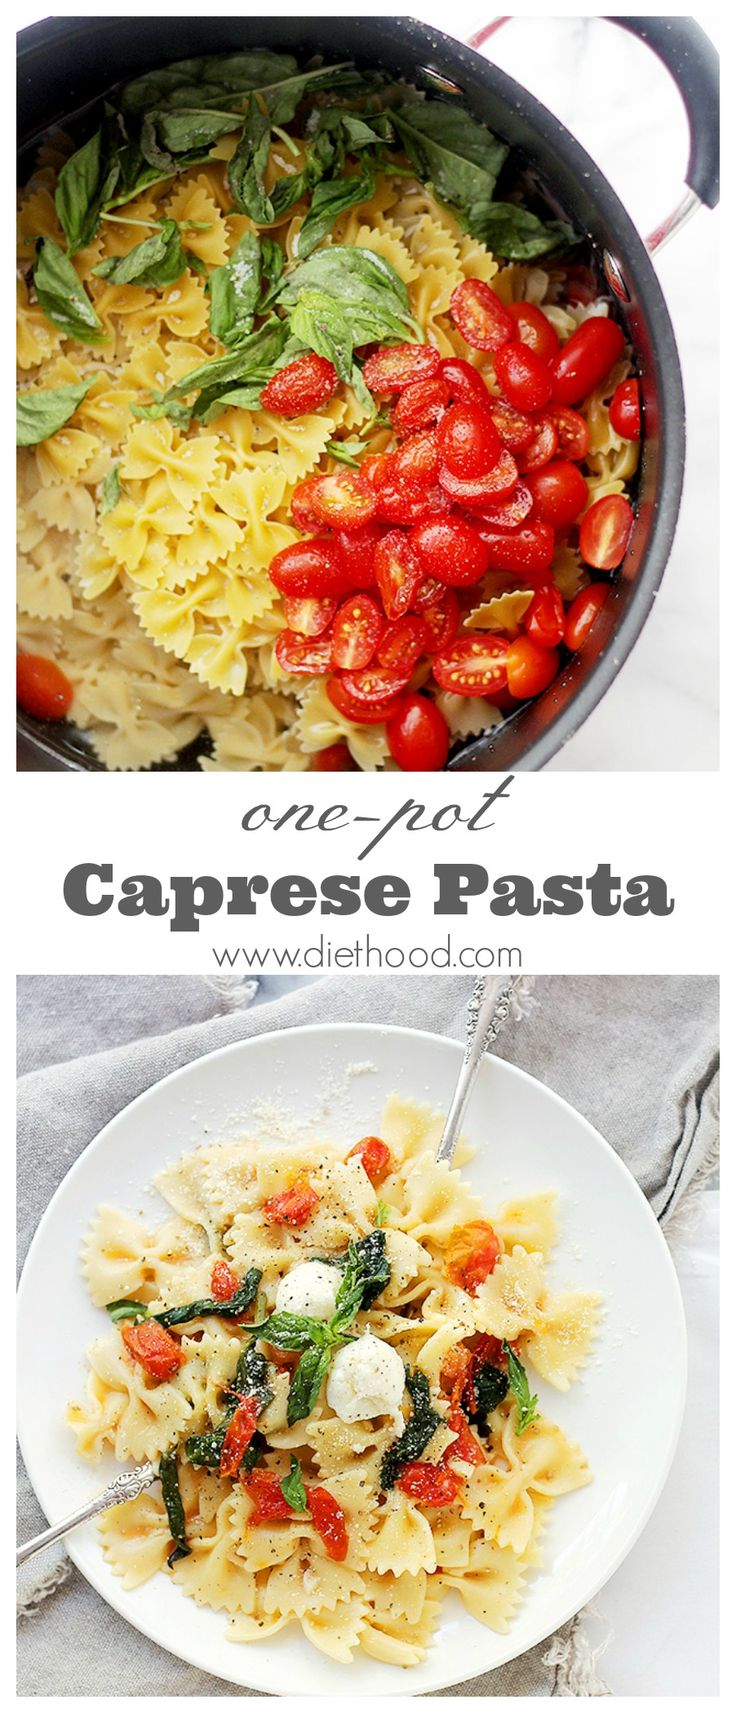 One Pot Caprese Pasta Dinner | www.diethood.com |The quickest, most delicious pasta dinner you will ever make!